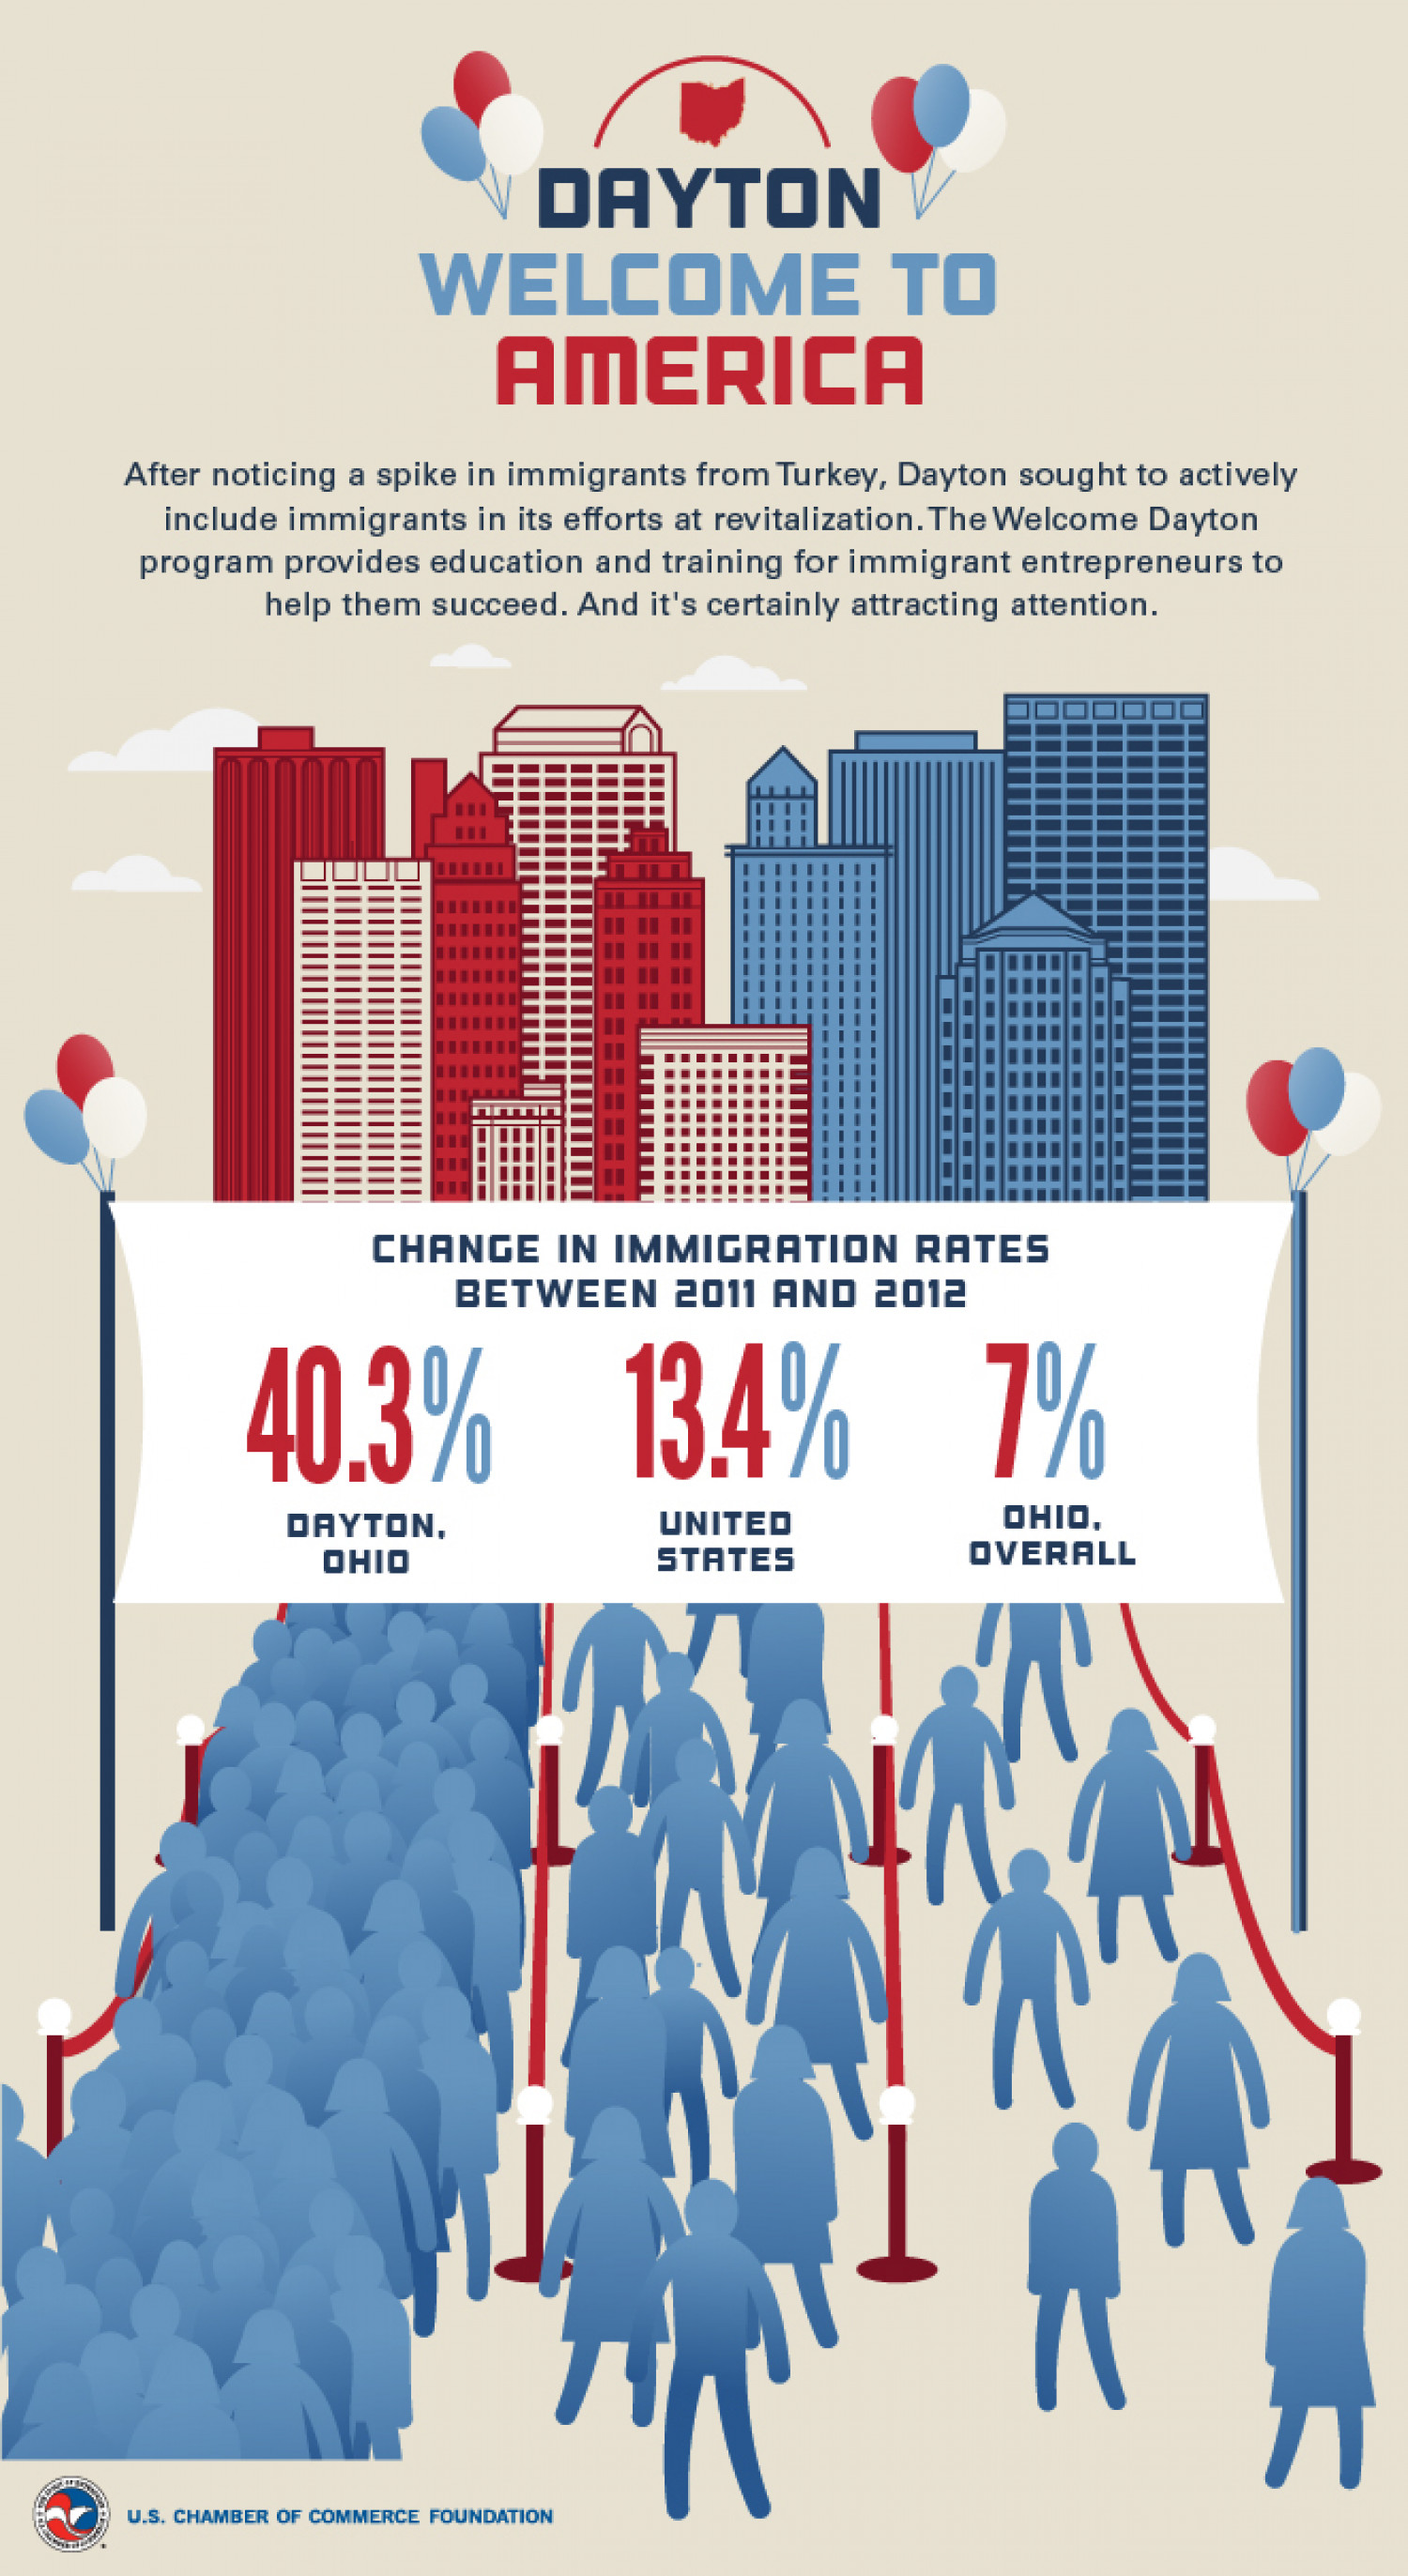 Dayton, OH: An Enterprising City Infographic